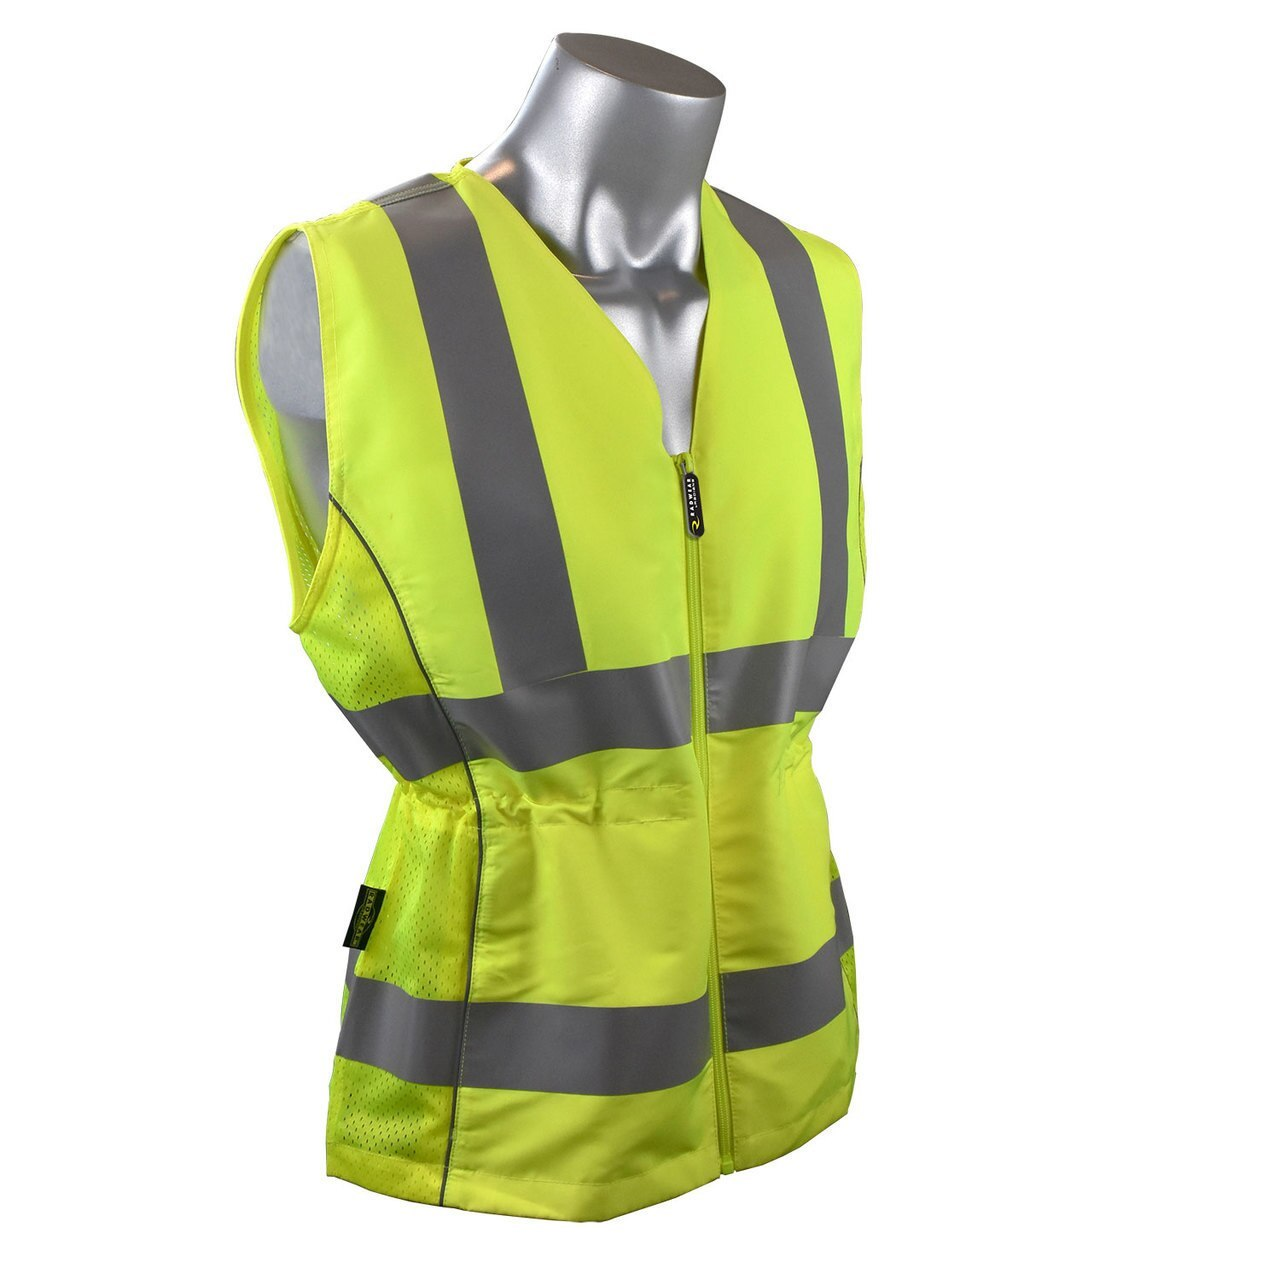 Women's Safety Apparel